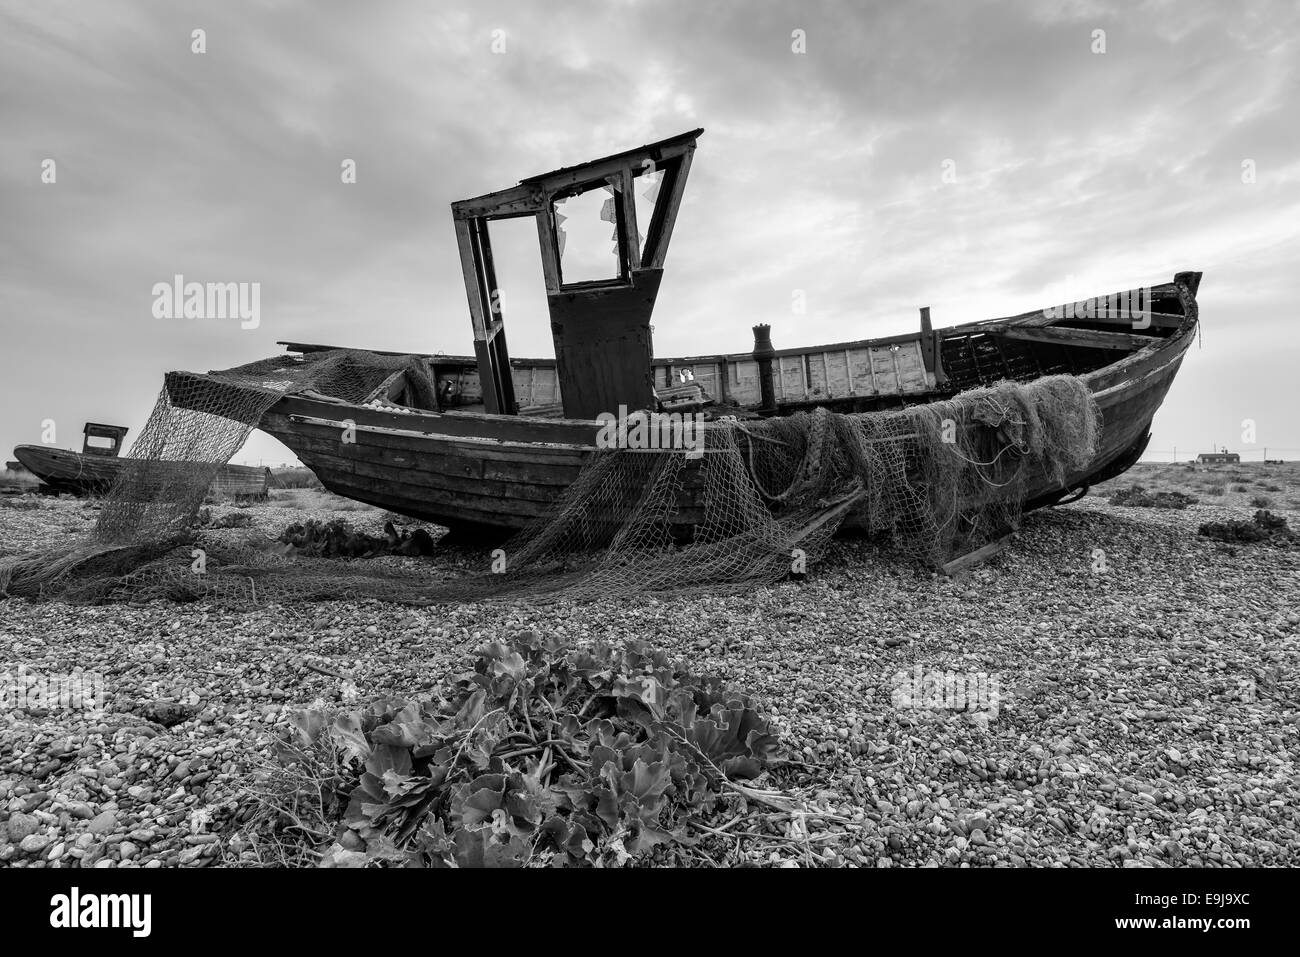 An old fishing boat with nets in black and white stock for Old fishing boat